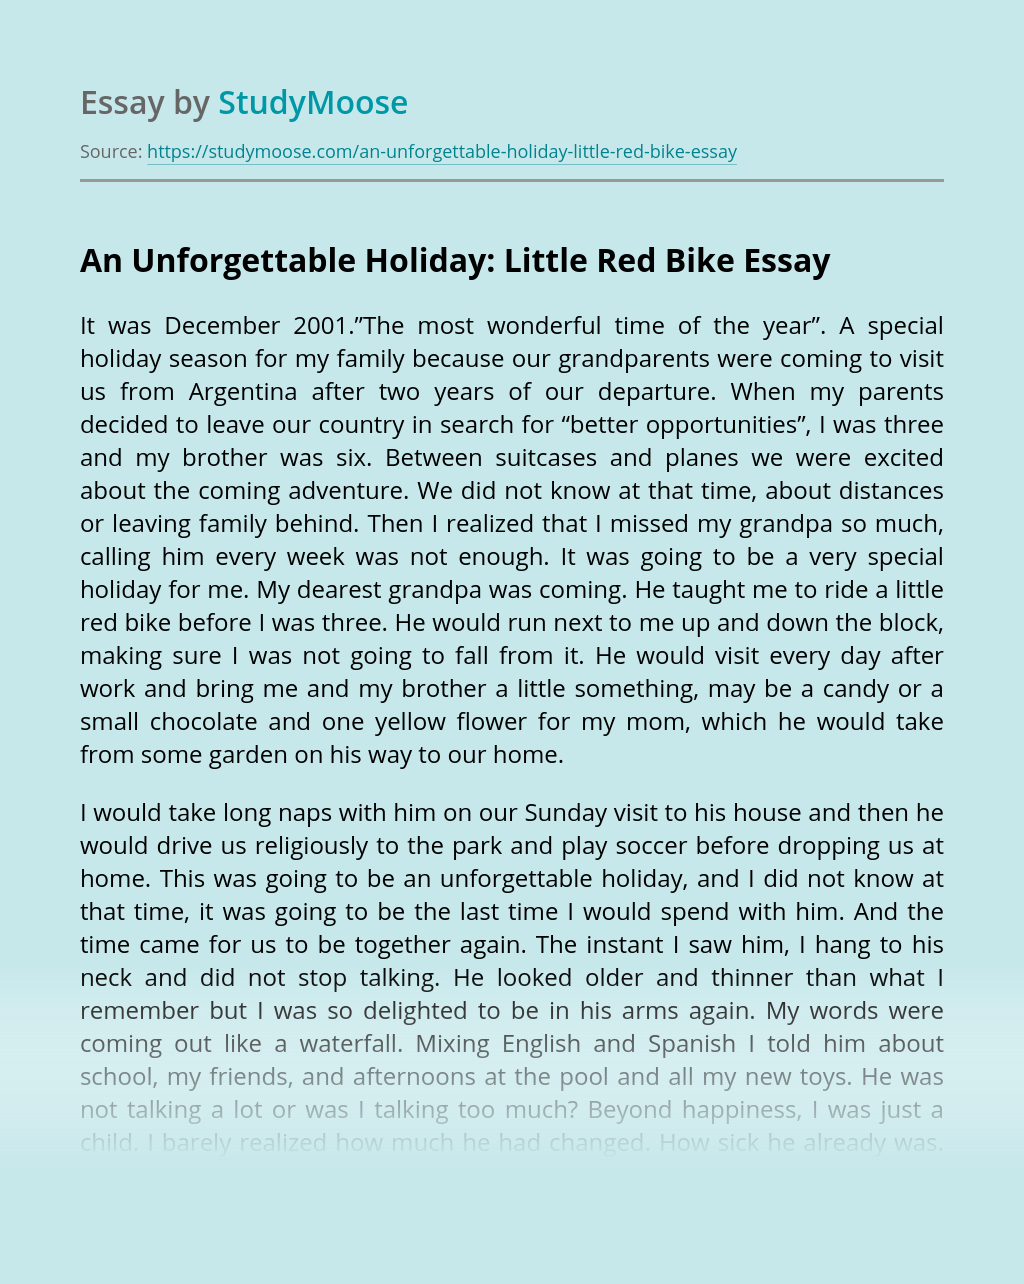 An Unforgettable Holiday: Little Red Bike